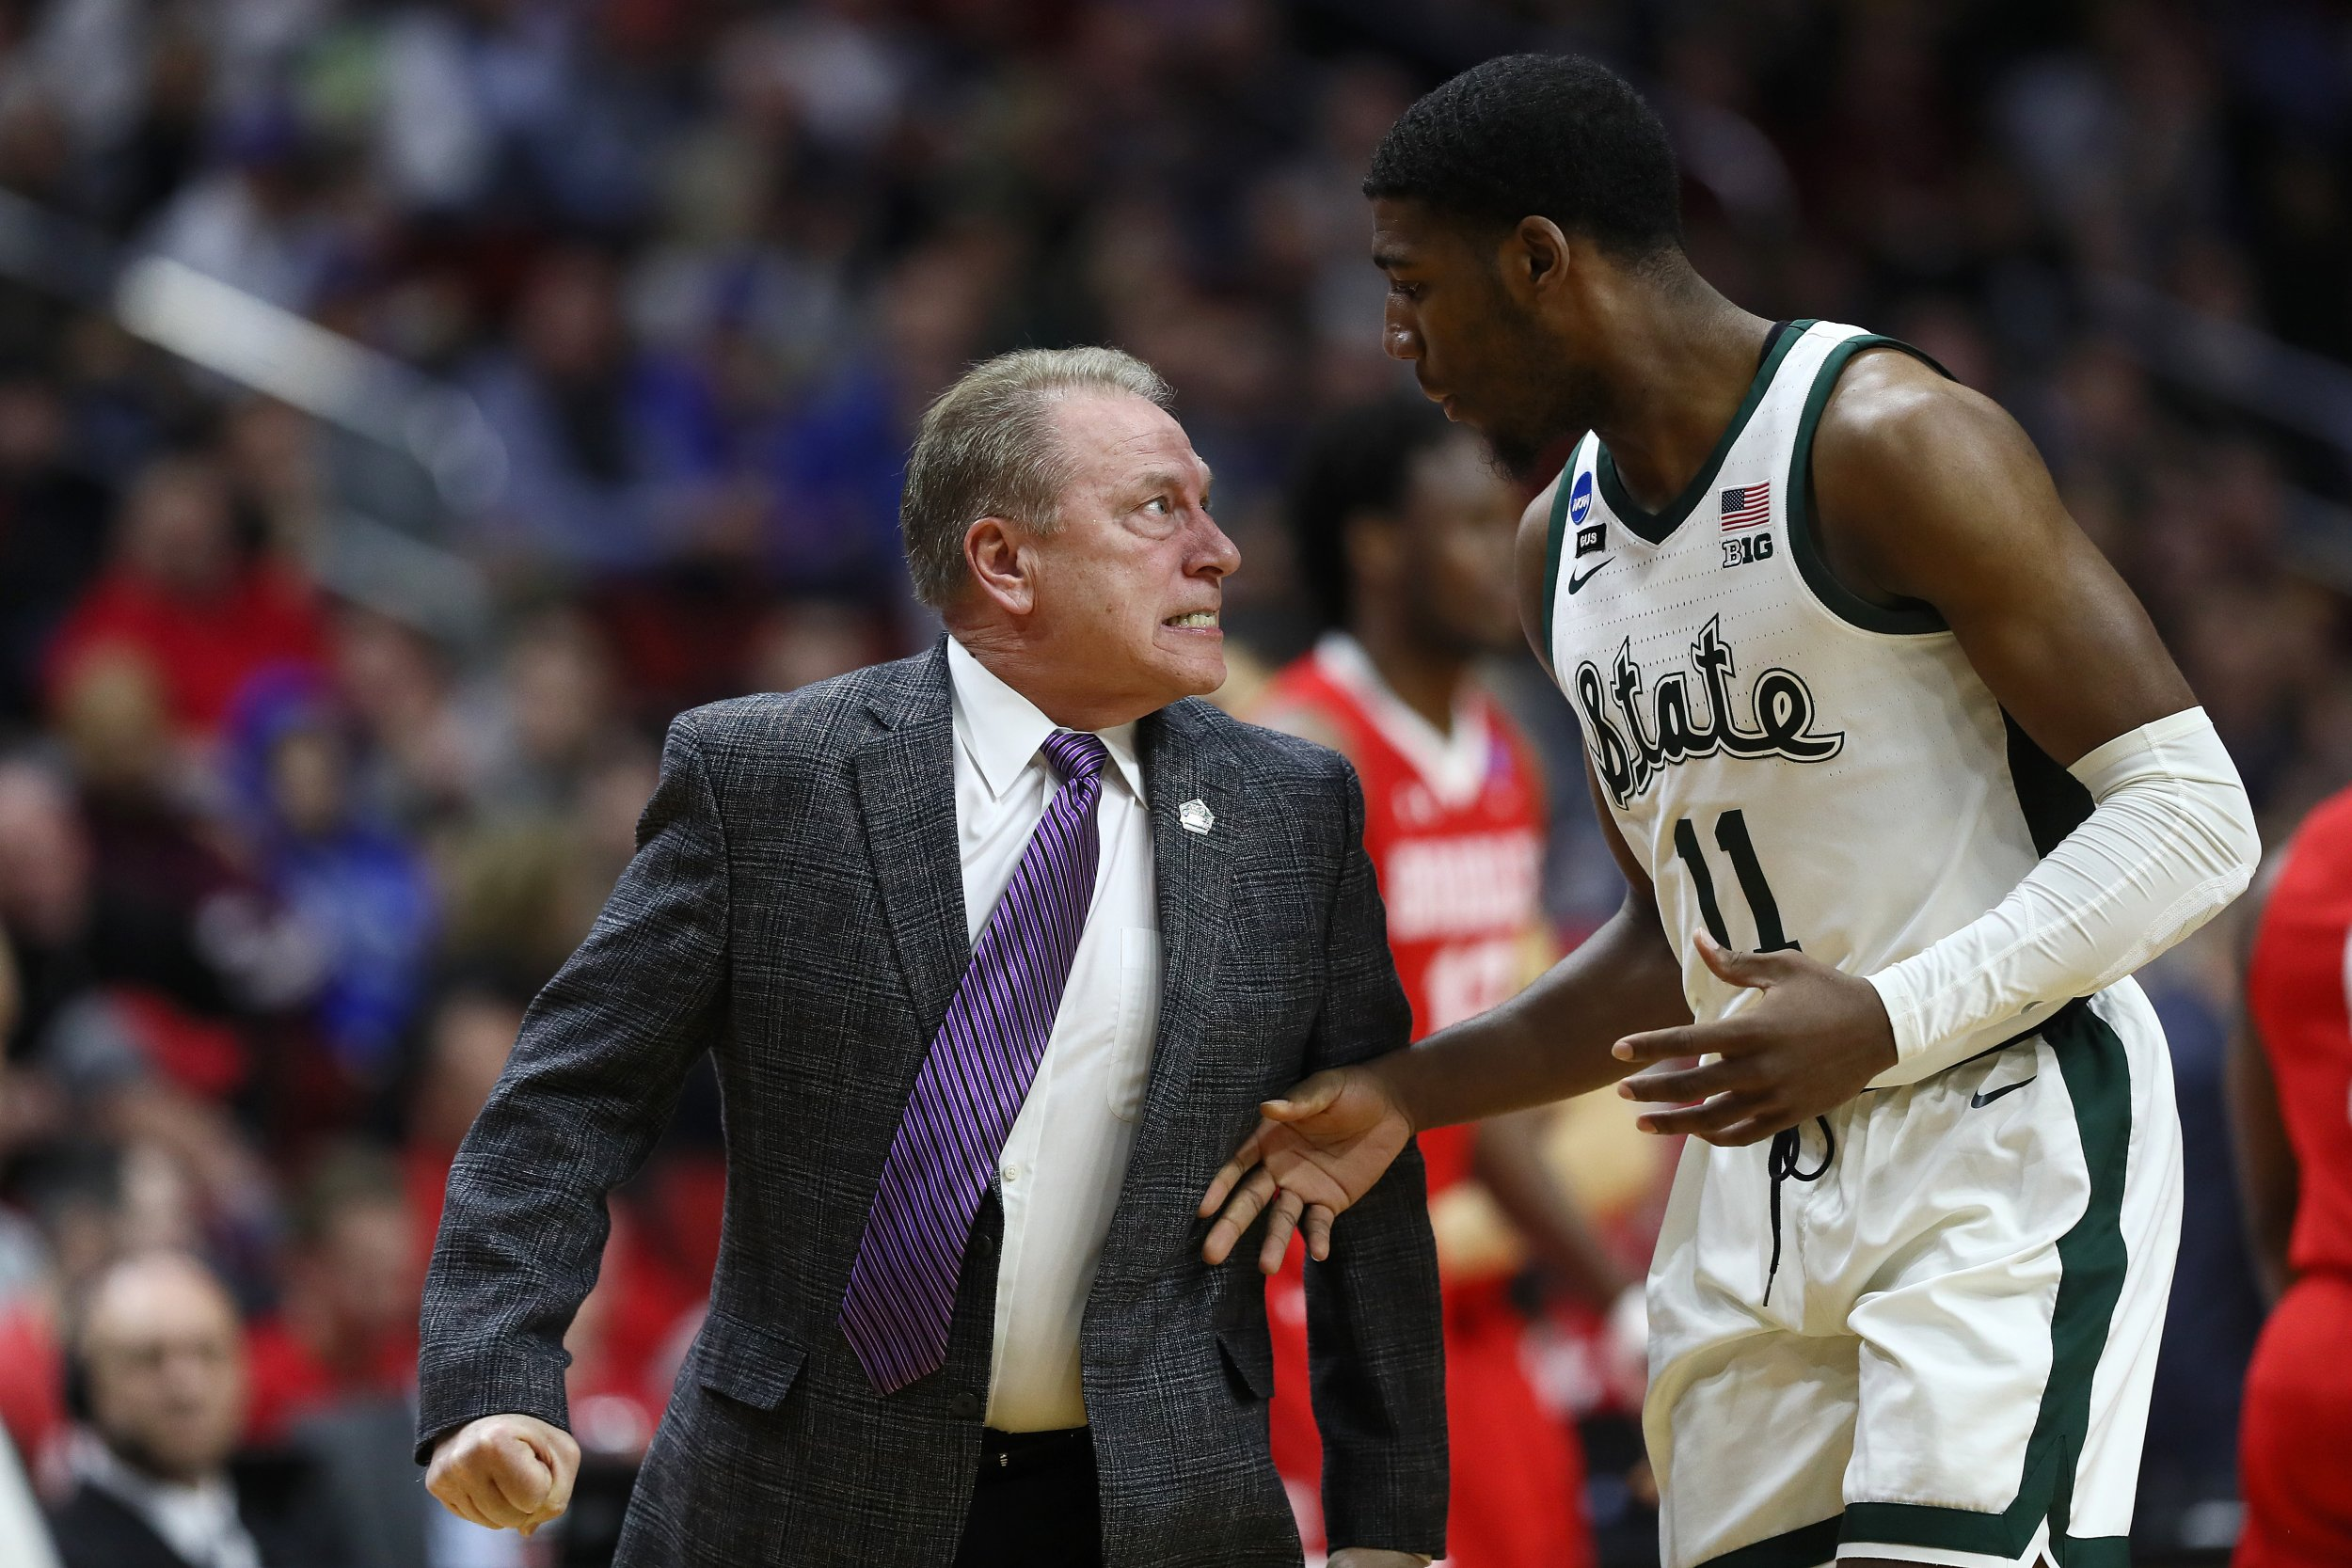 Tom Izzo Lays Into 'Perplexed' Freshman Aaron Henry, Held Back By Other Players